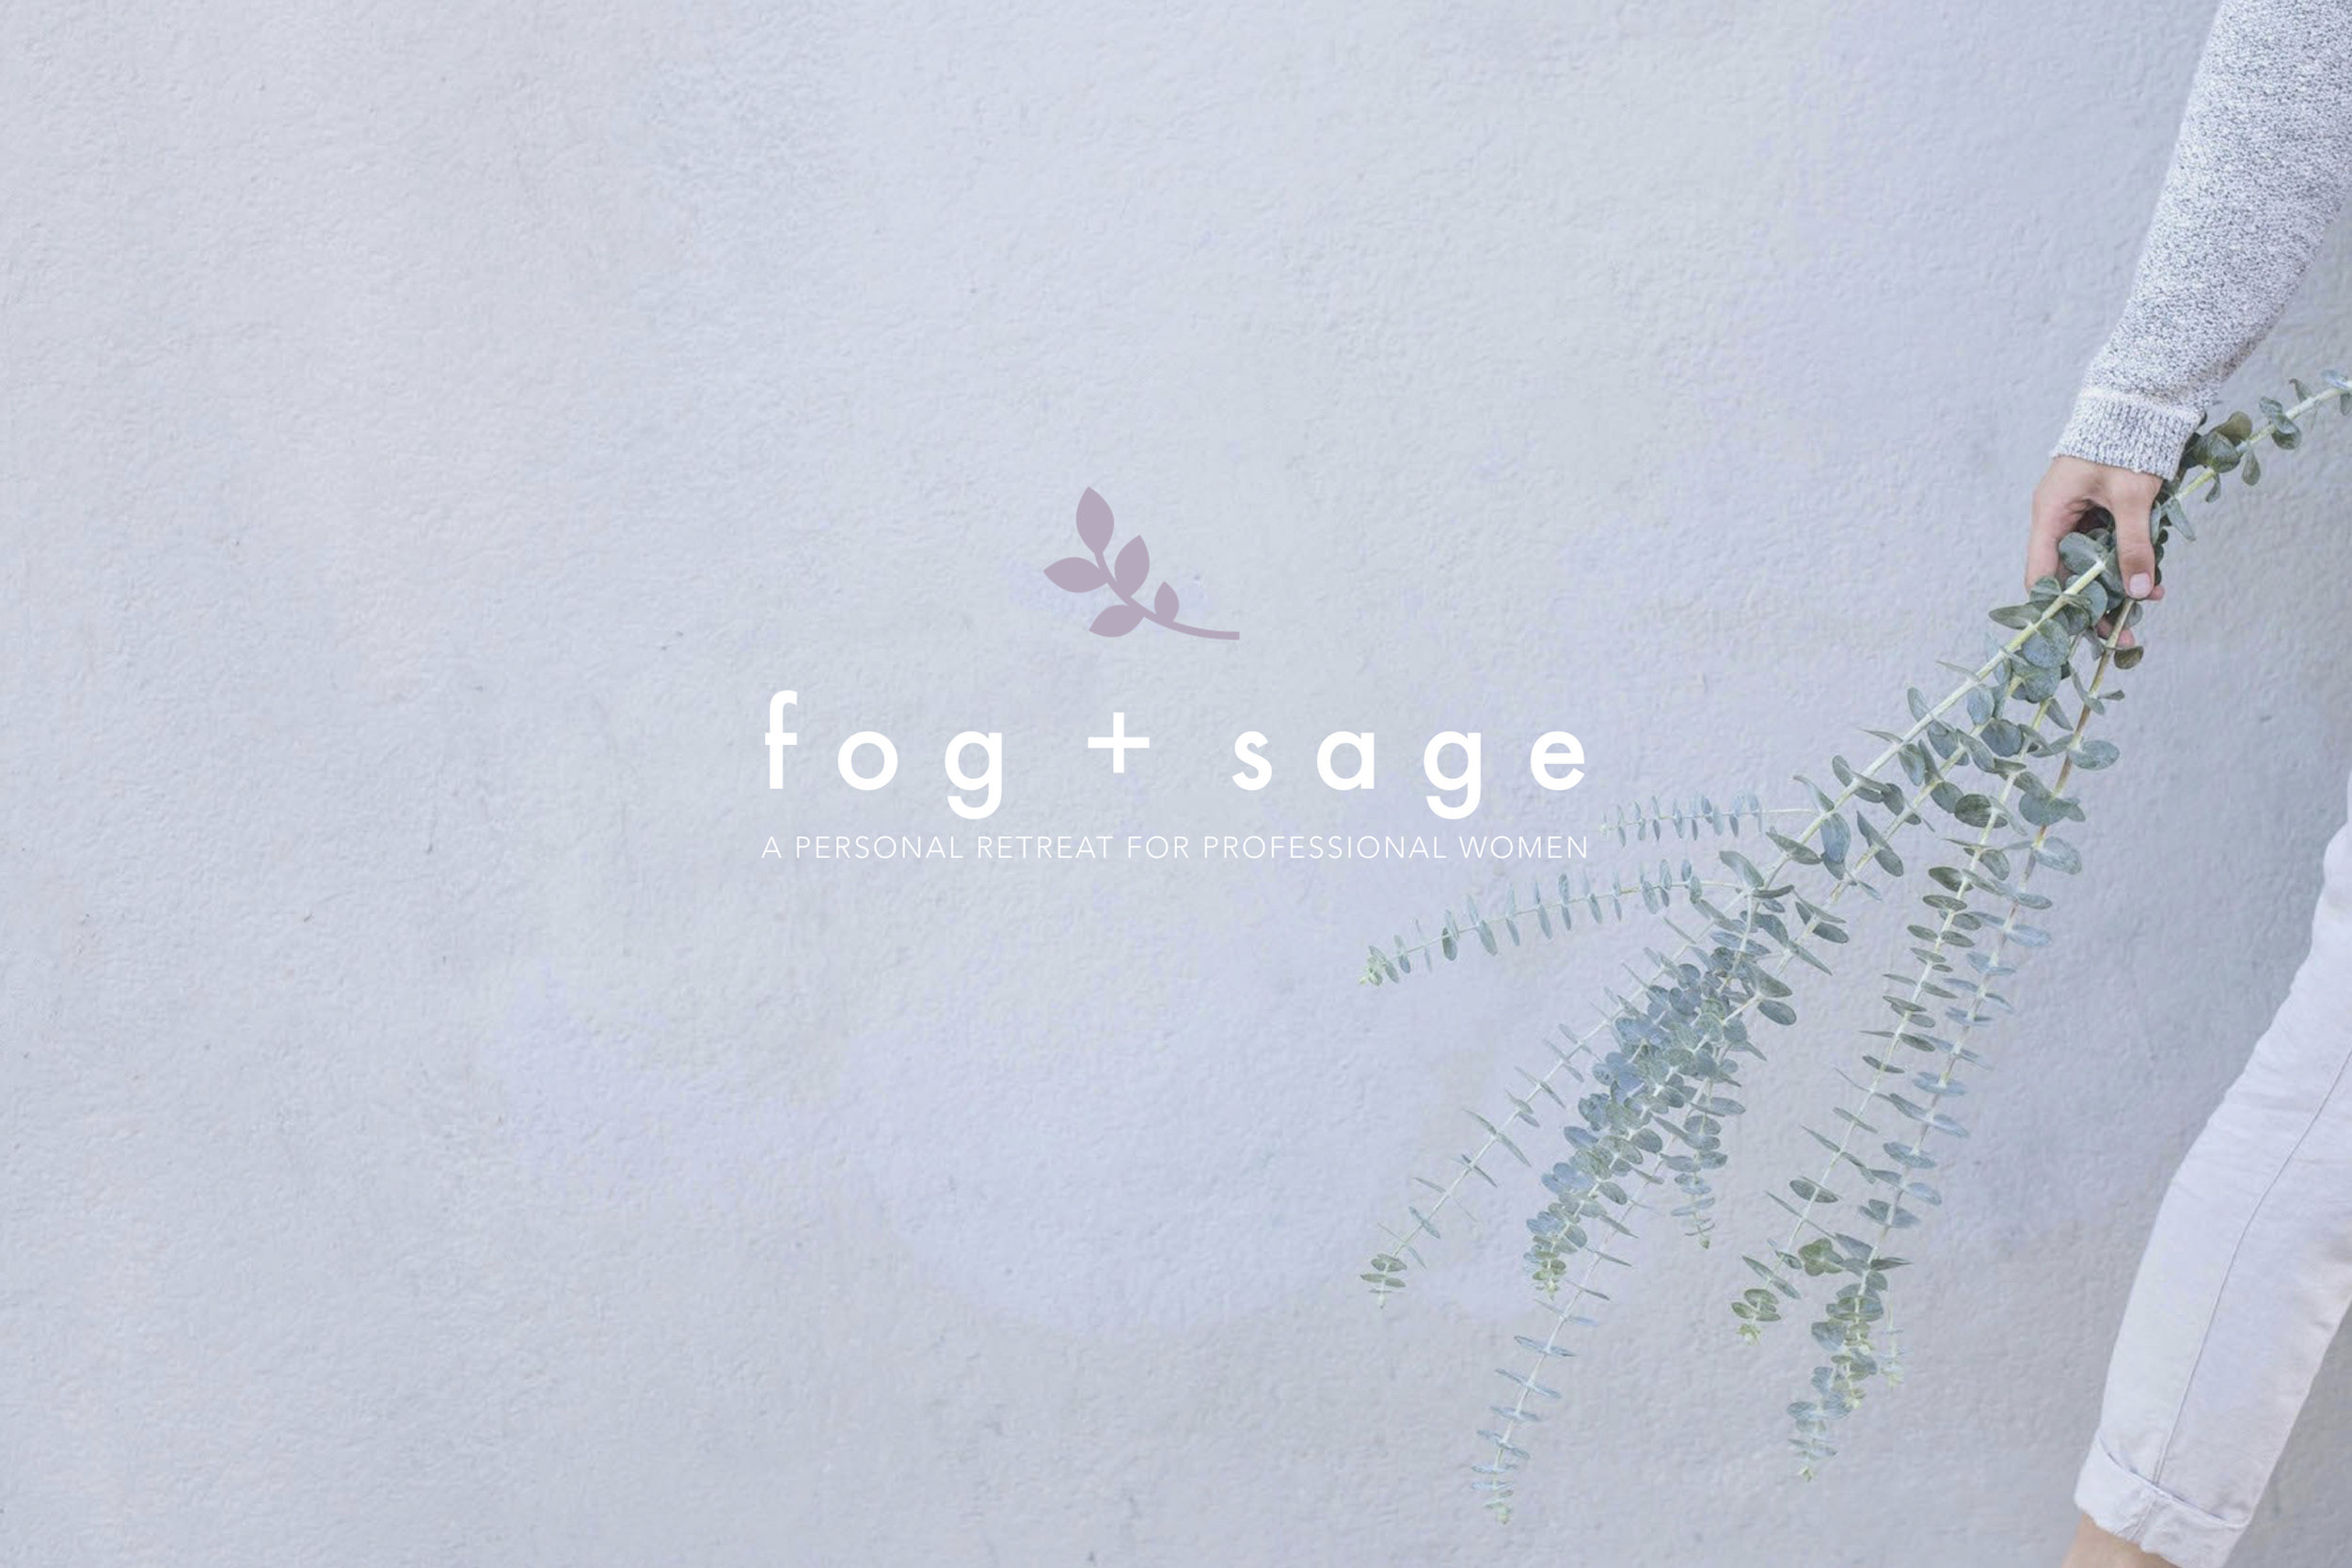 Copy of Fog + Sage